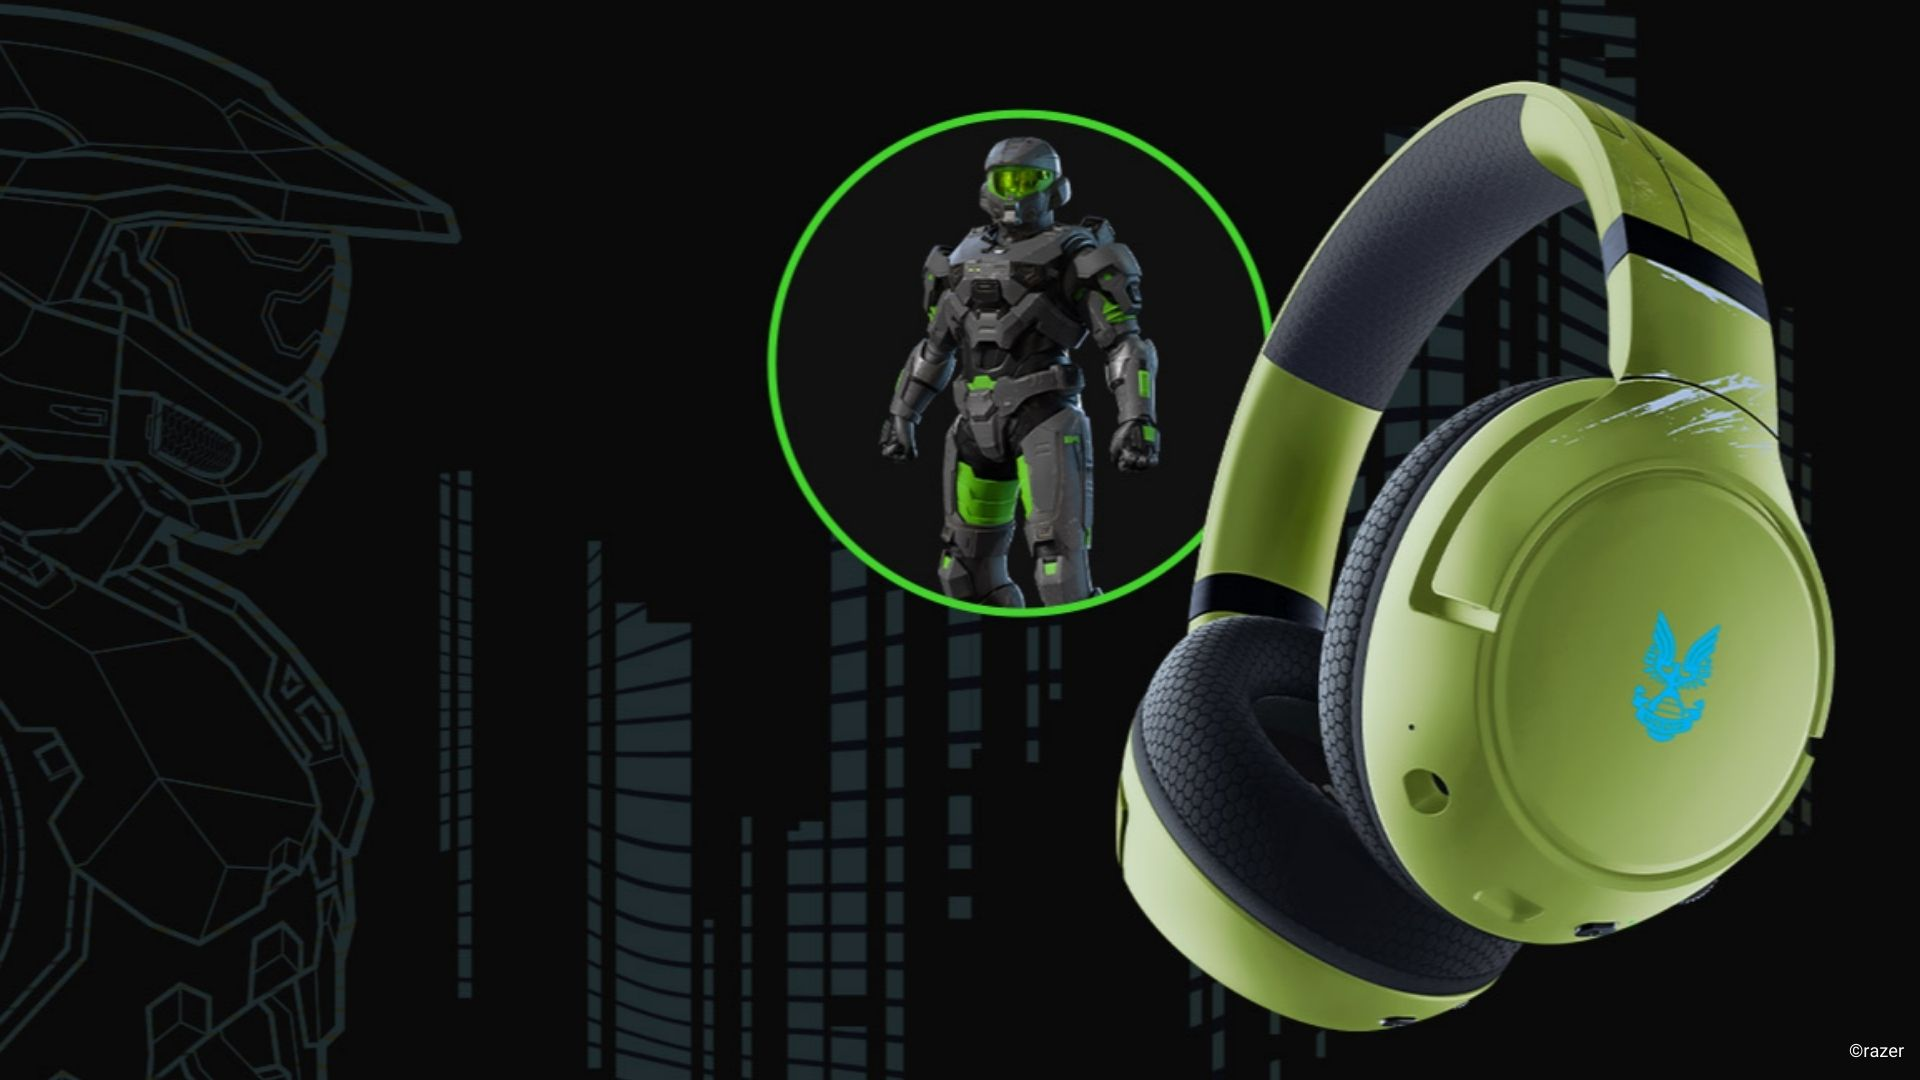 Halo Limited Edition Headset